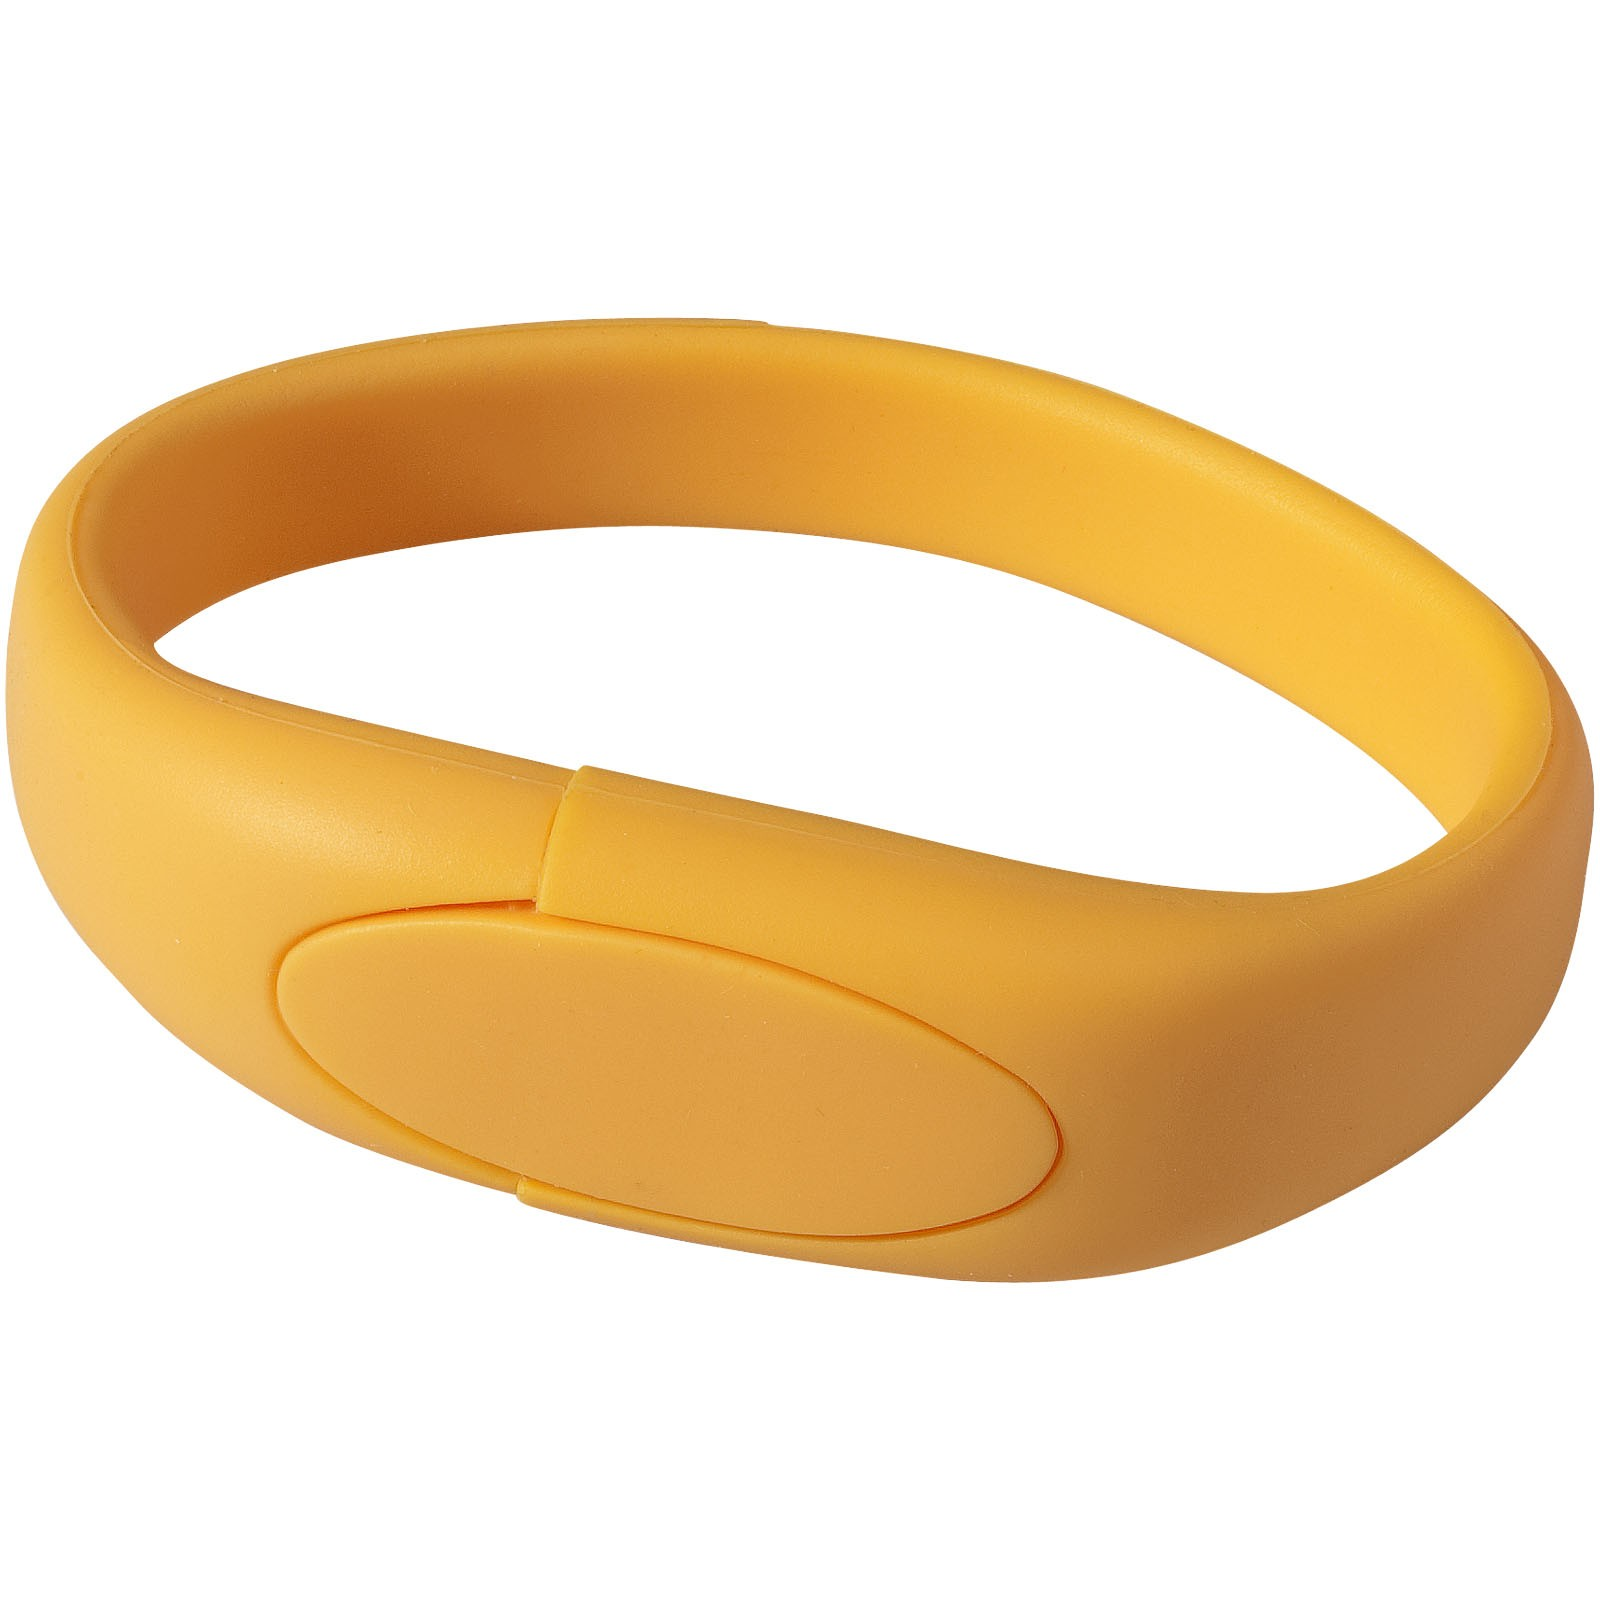 Bracelet USB-Stick - orange / 1GB